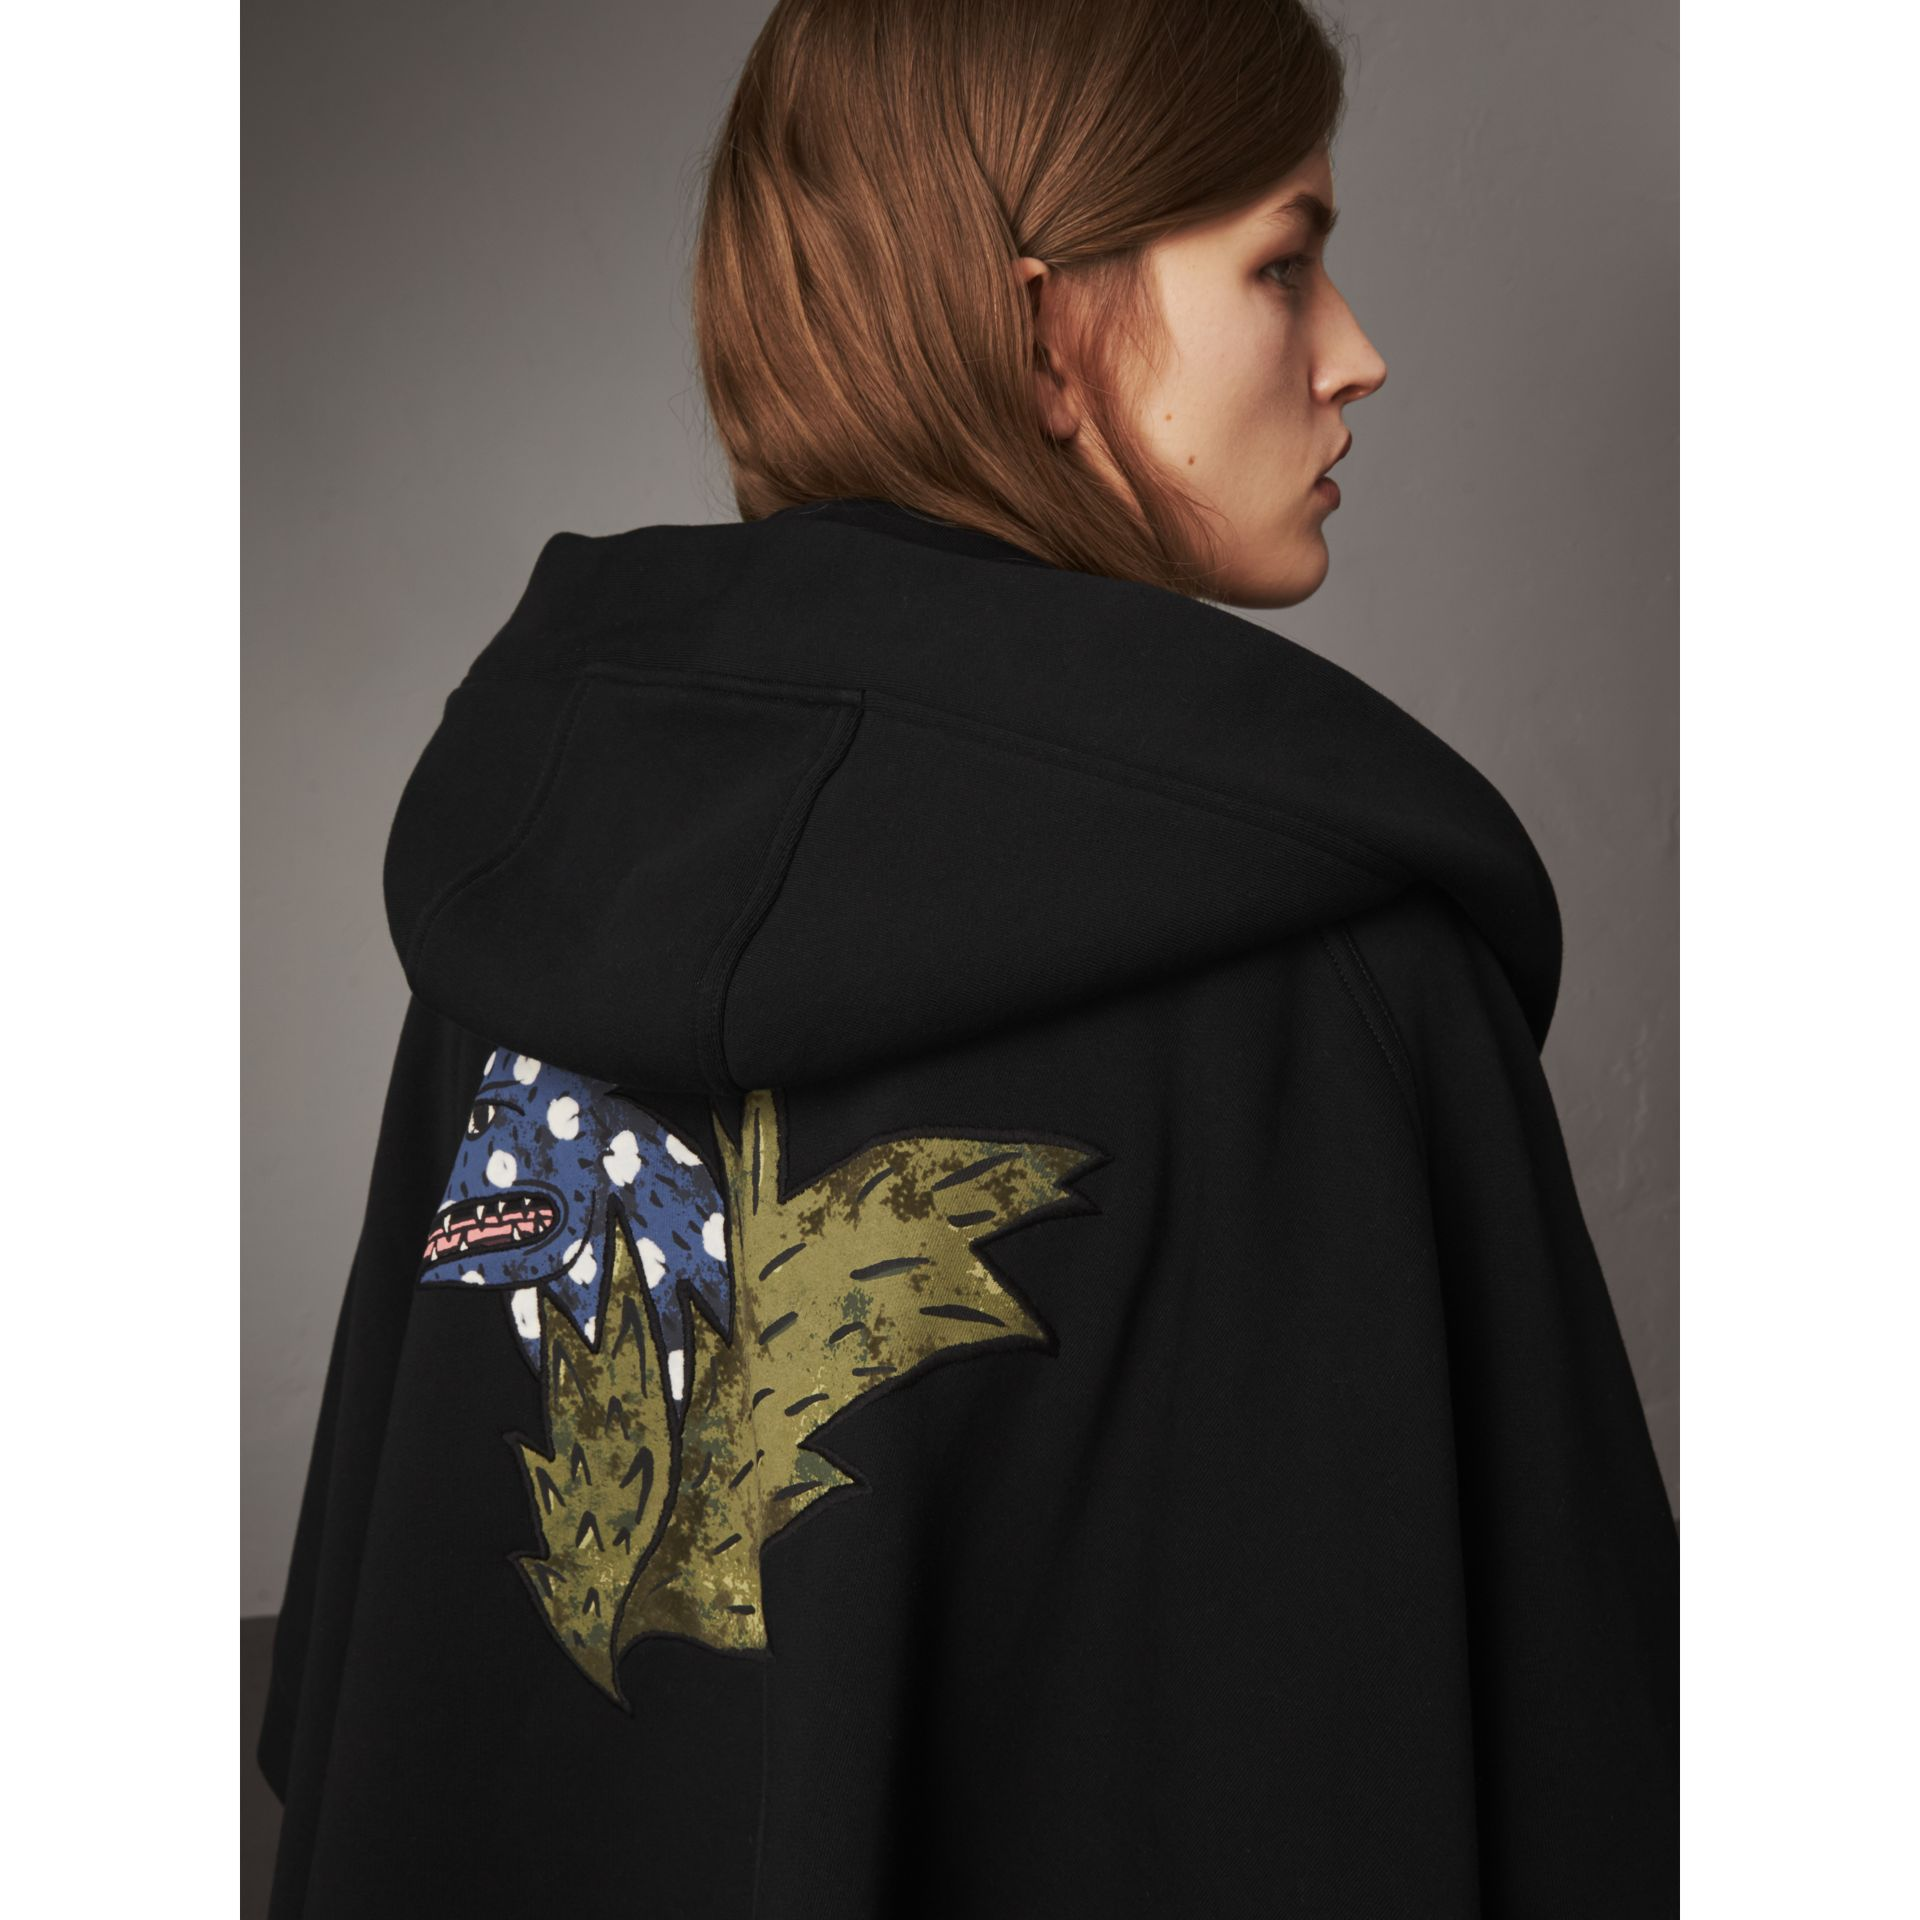 Beasts Motif Hooded Sweatshirt Poncho in Black - Women | Burberry - gallery image 2